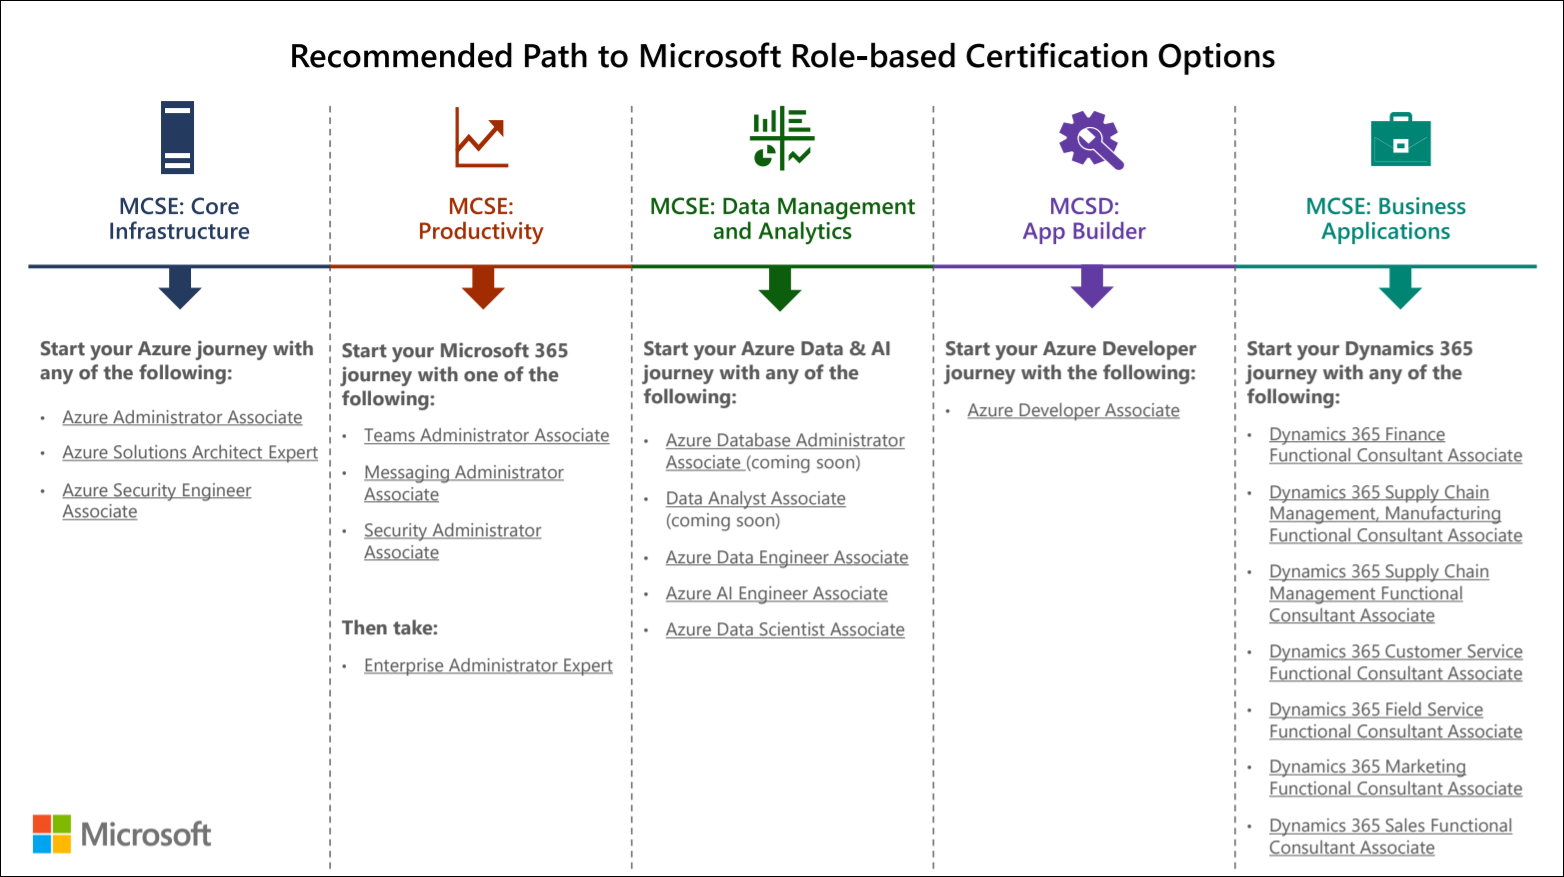 microsoft role-based certification options